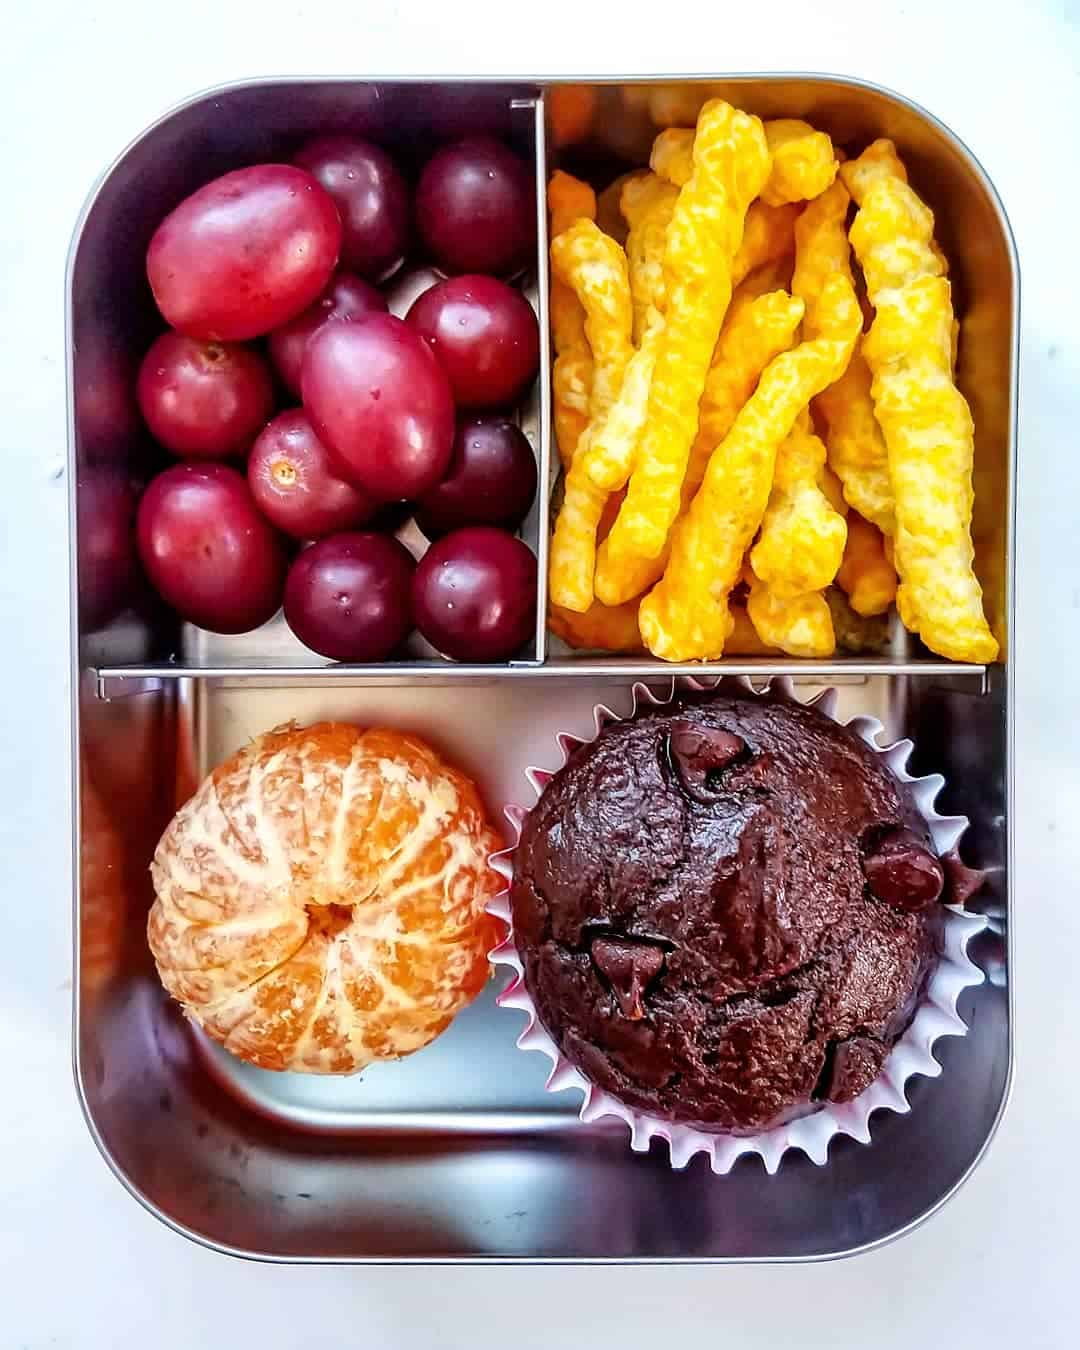 Chocolate Banana muffins, grapes and clementine snack-box